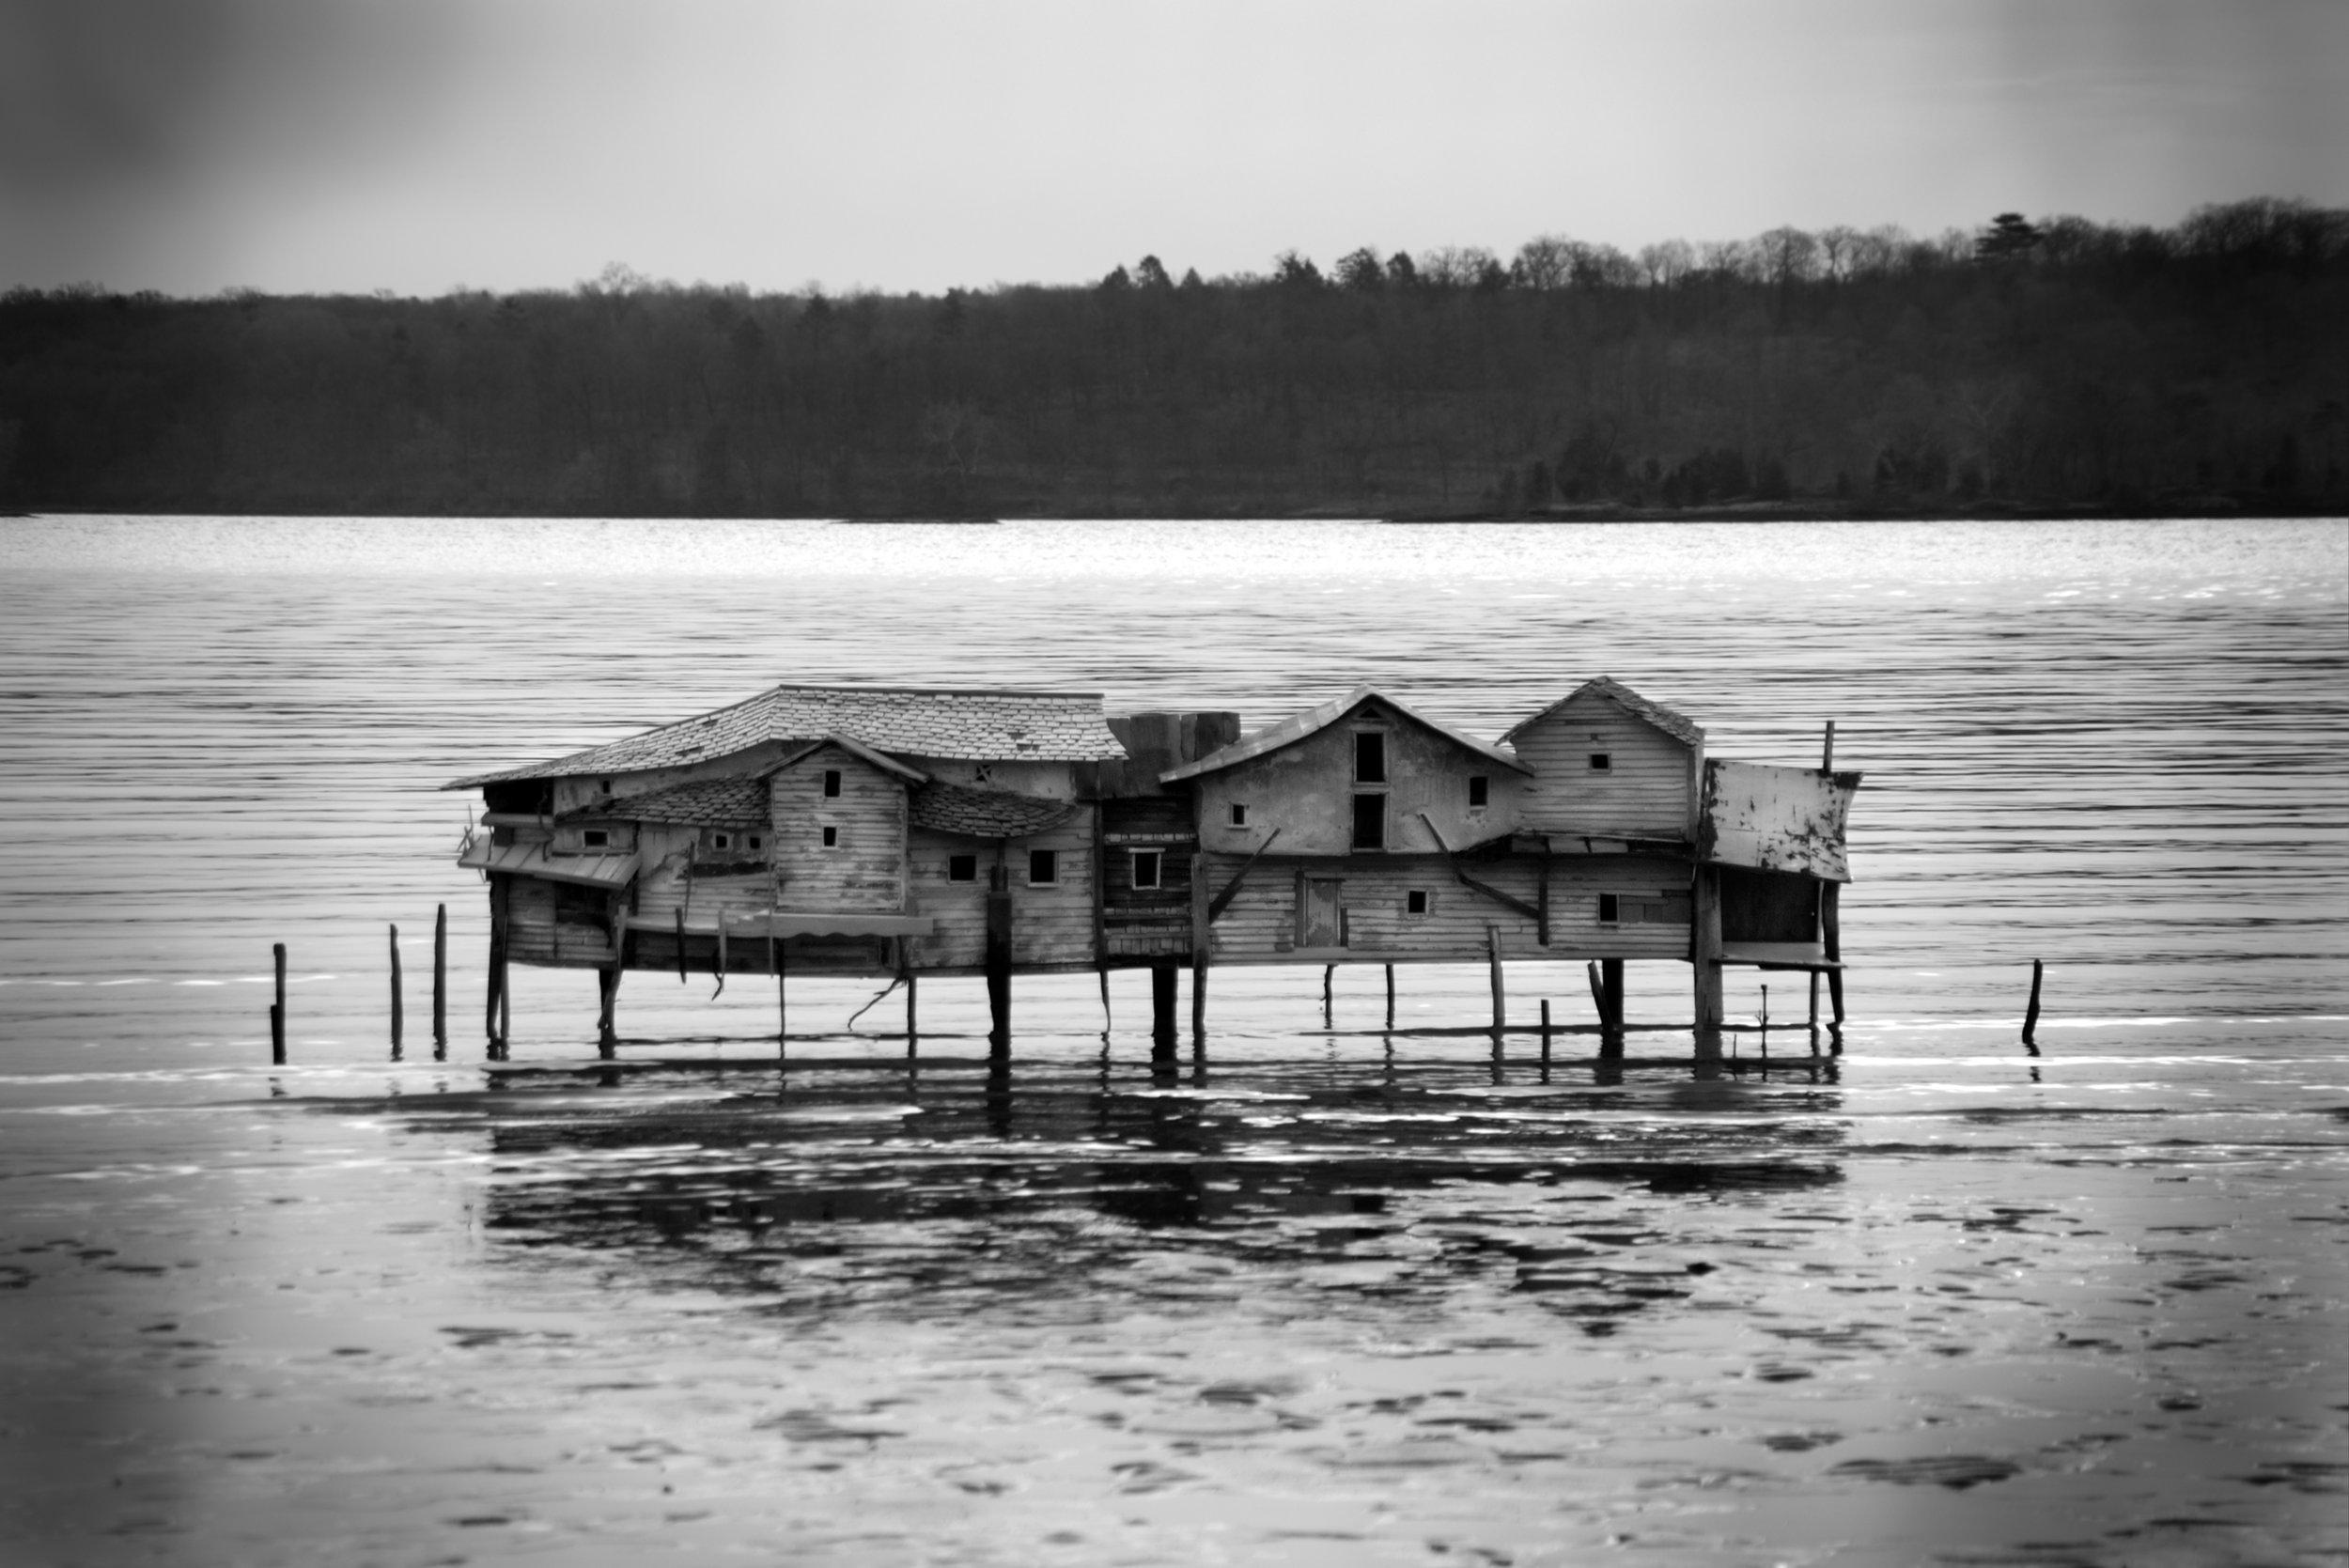 Mudflat House, Photograph/Sculpture, Robert Hite, 2006